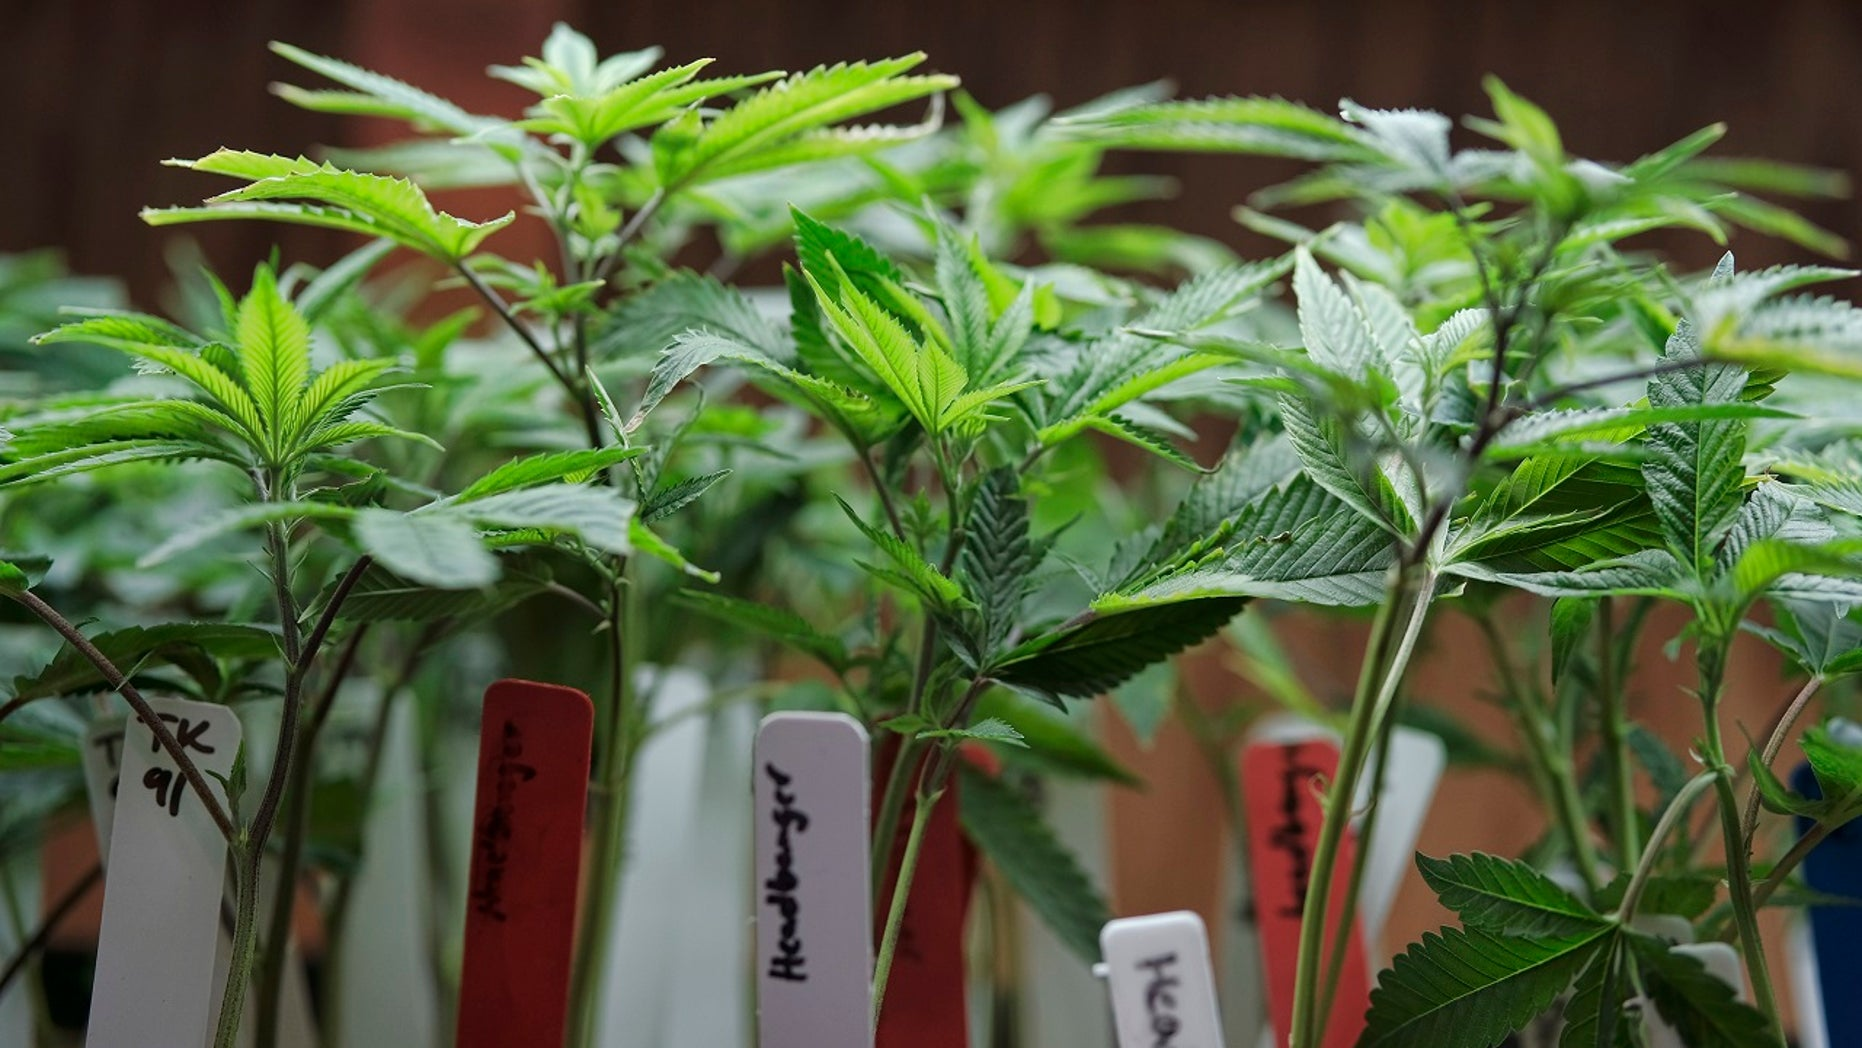 Vermont Gov. Phil Scott indicated he would sign a bill approved by both the House and Senate that would allow the recreational use of marijuana.